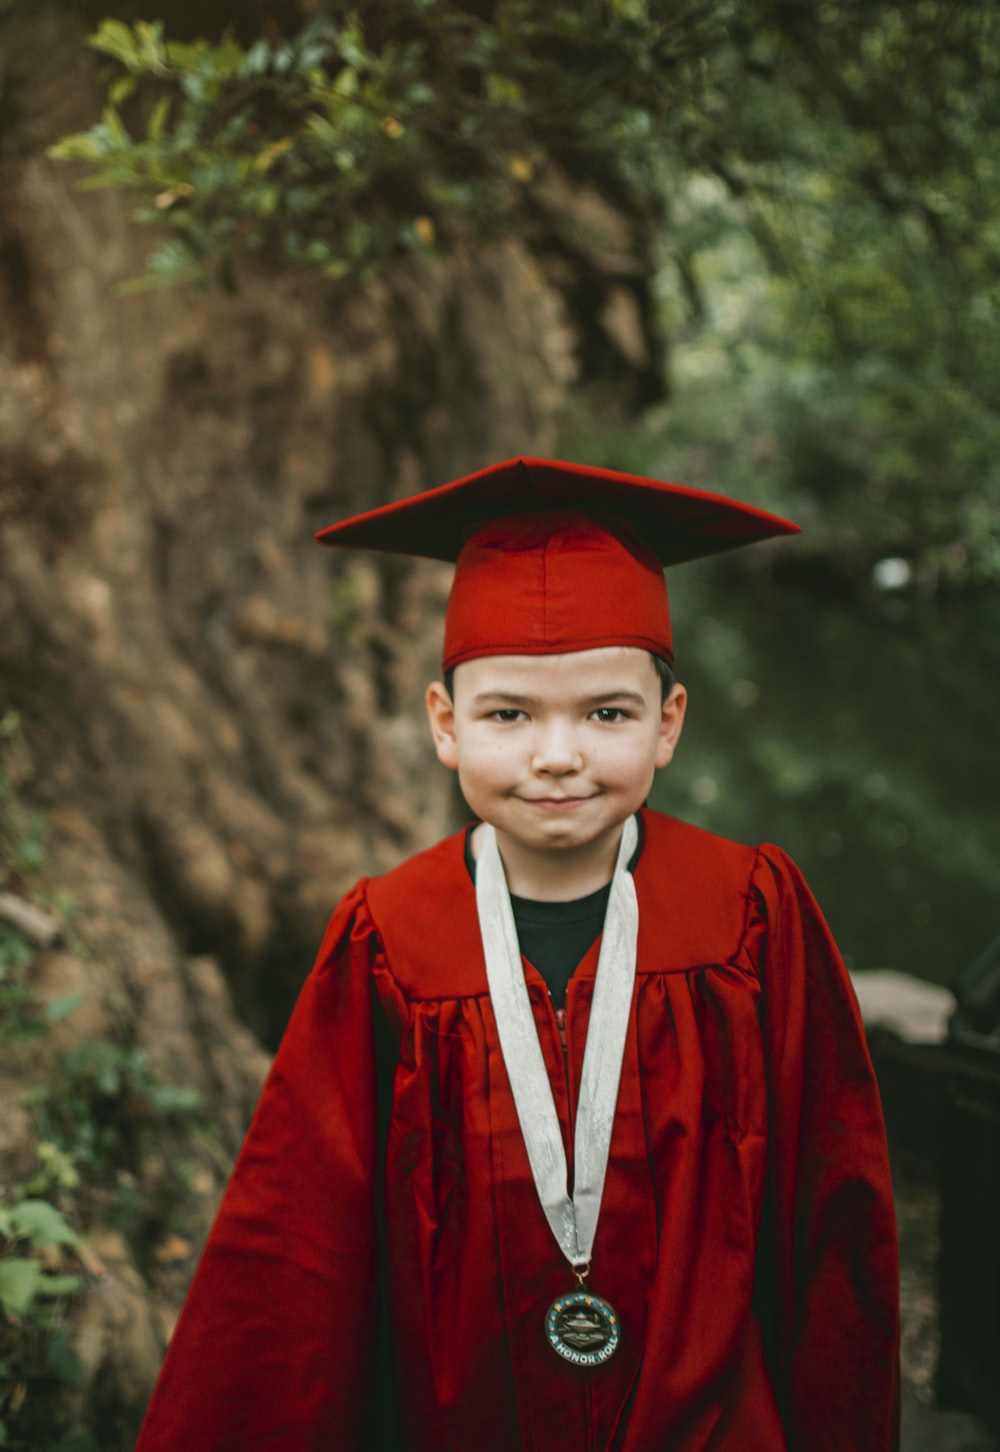 boy in red academic robe